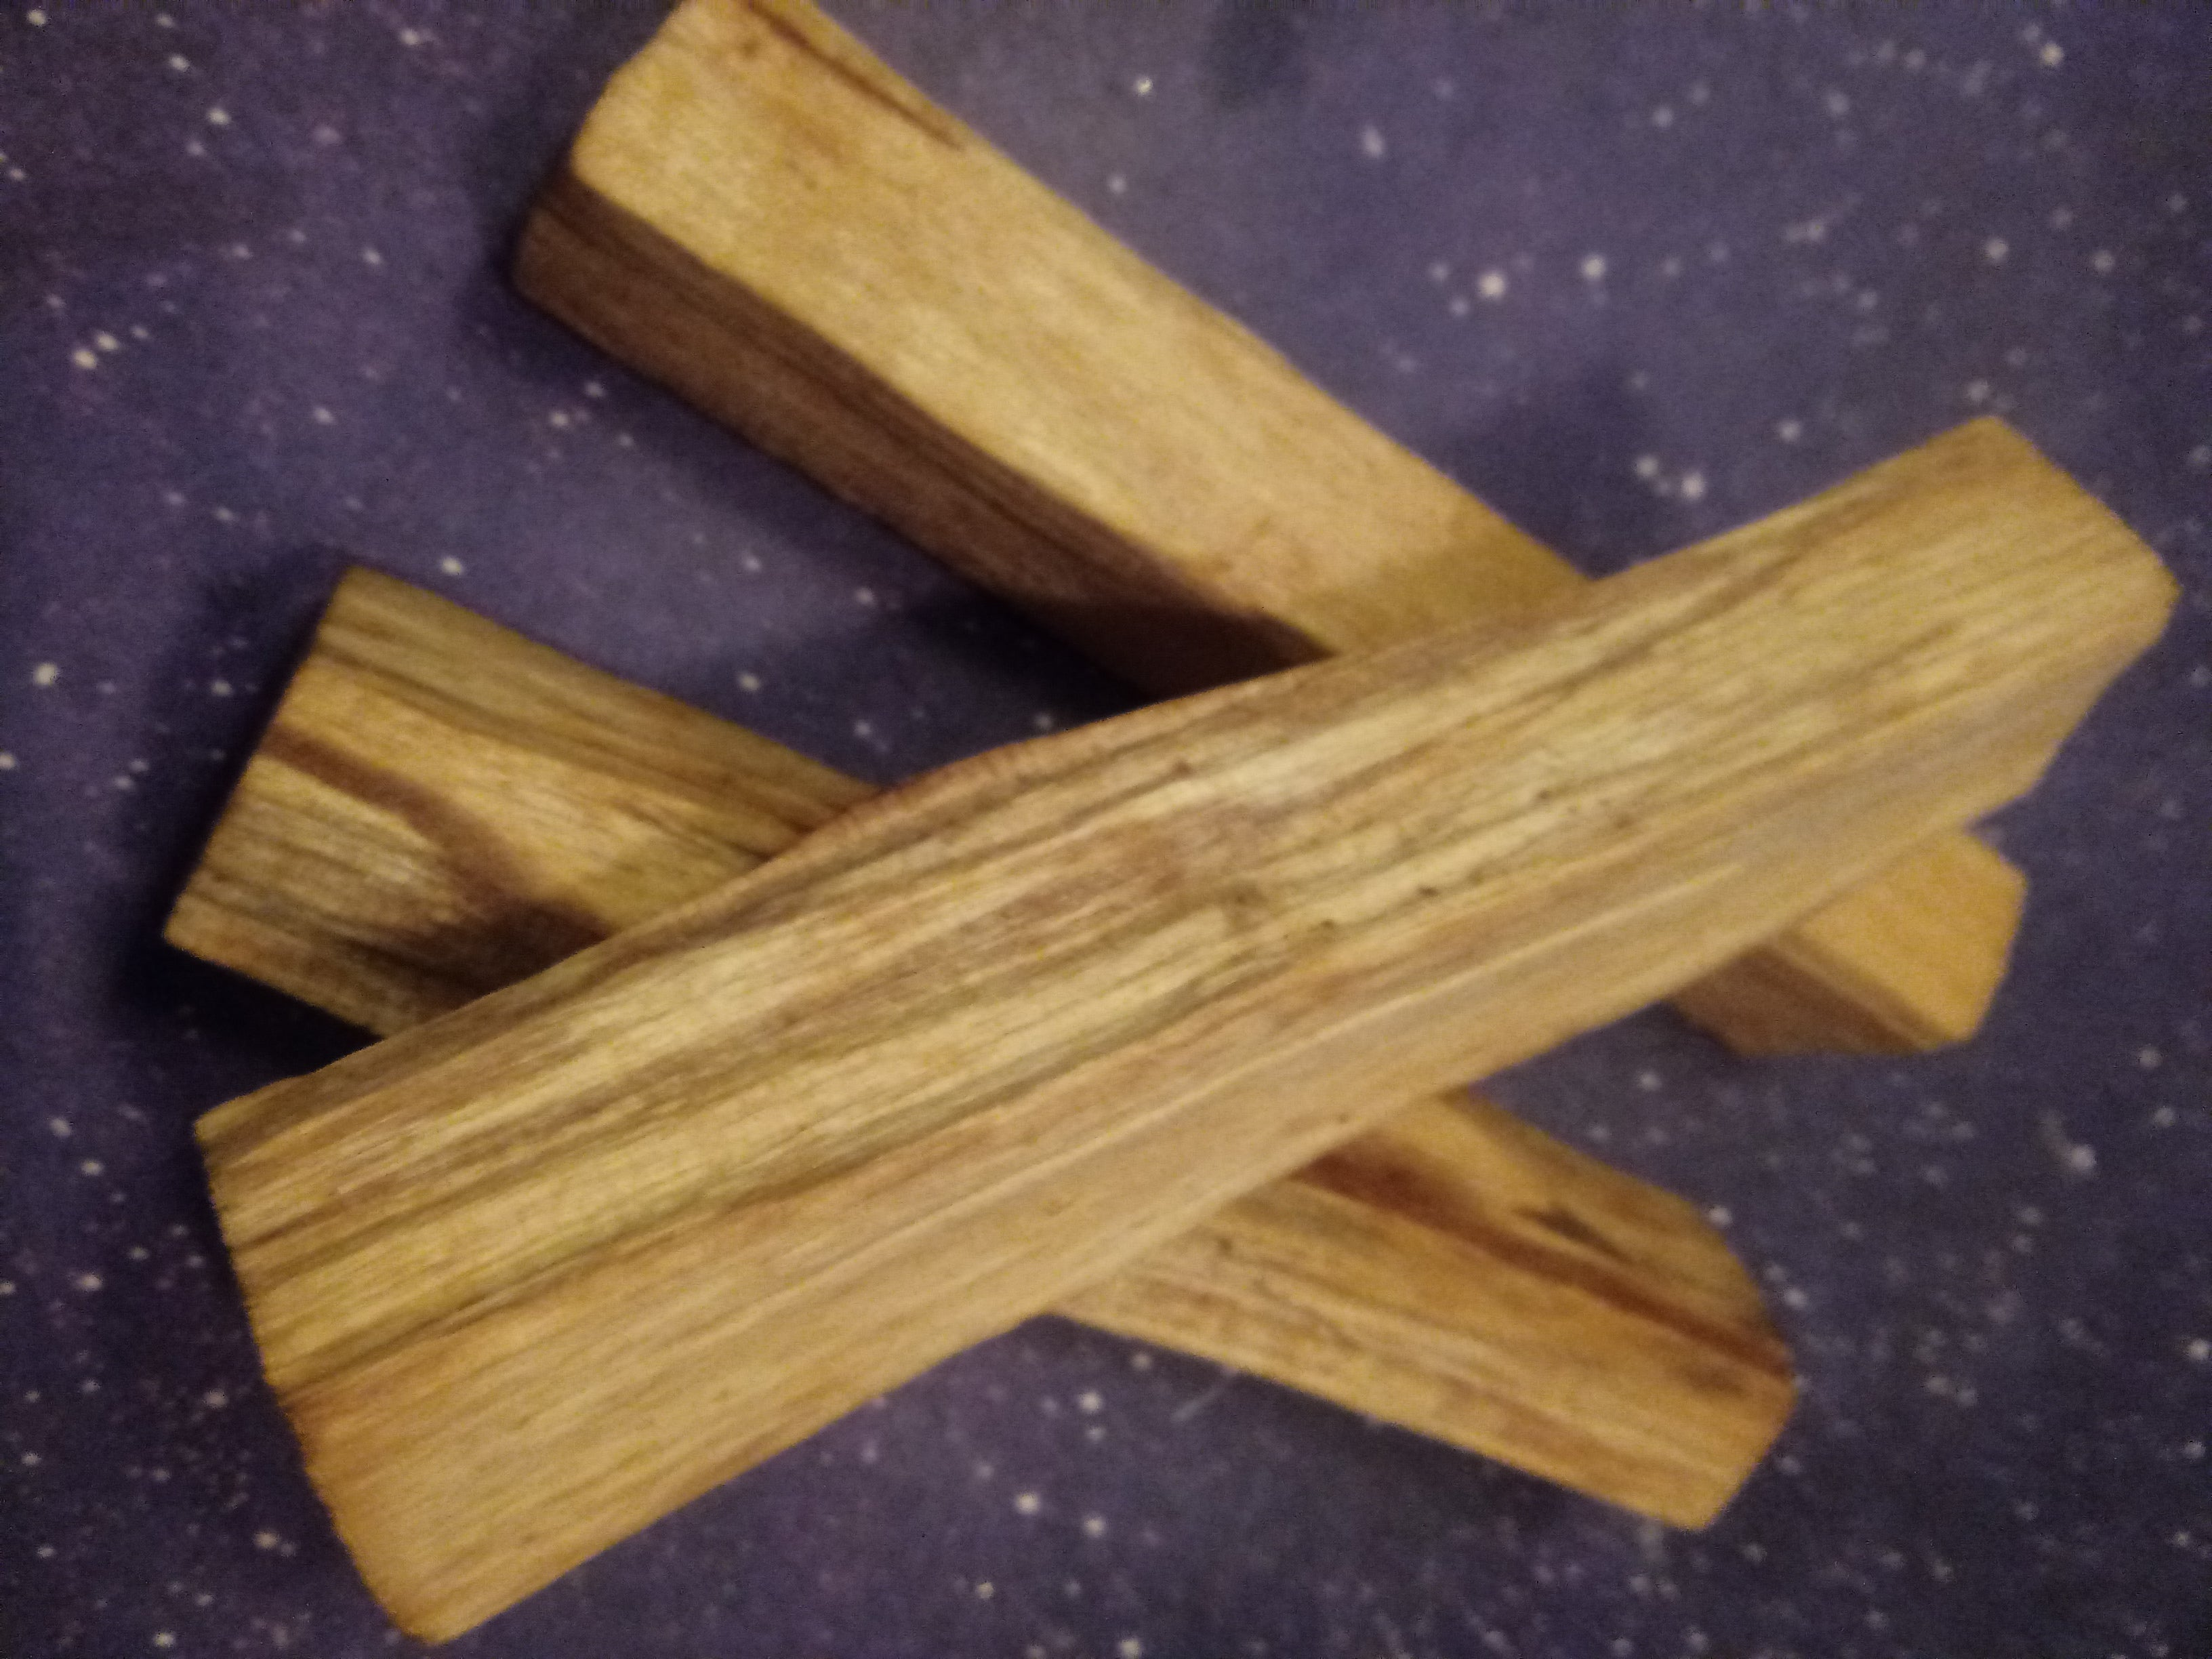 3 Palo Santo sticks